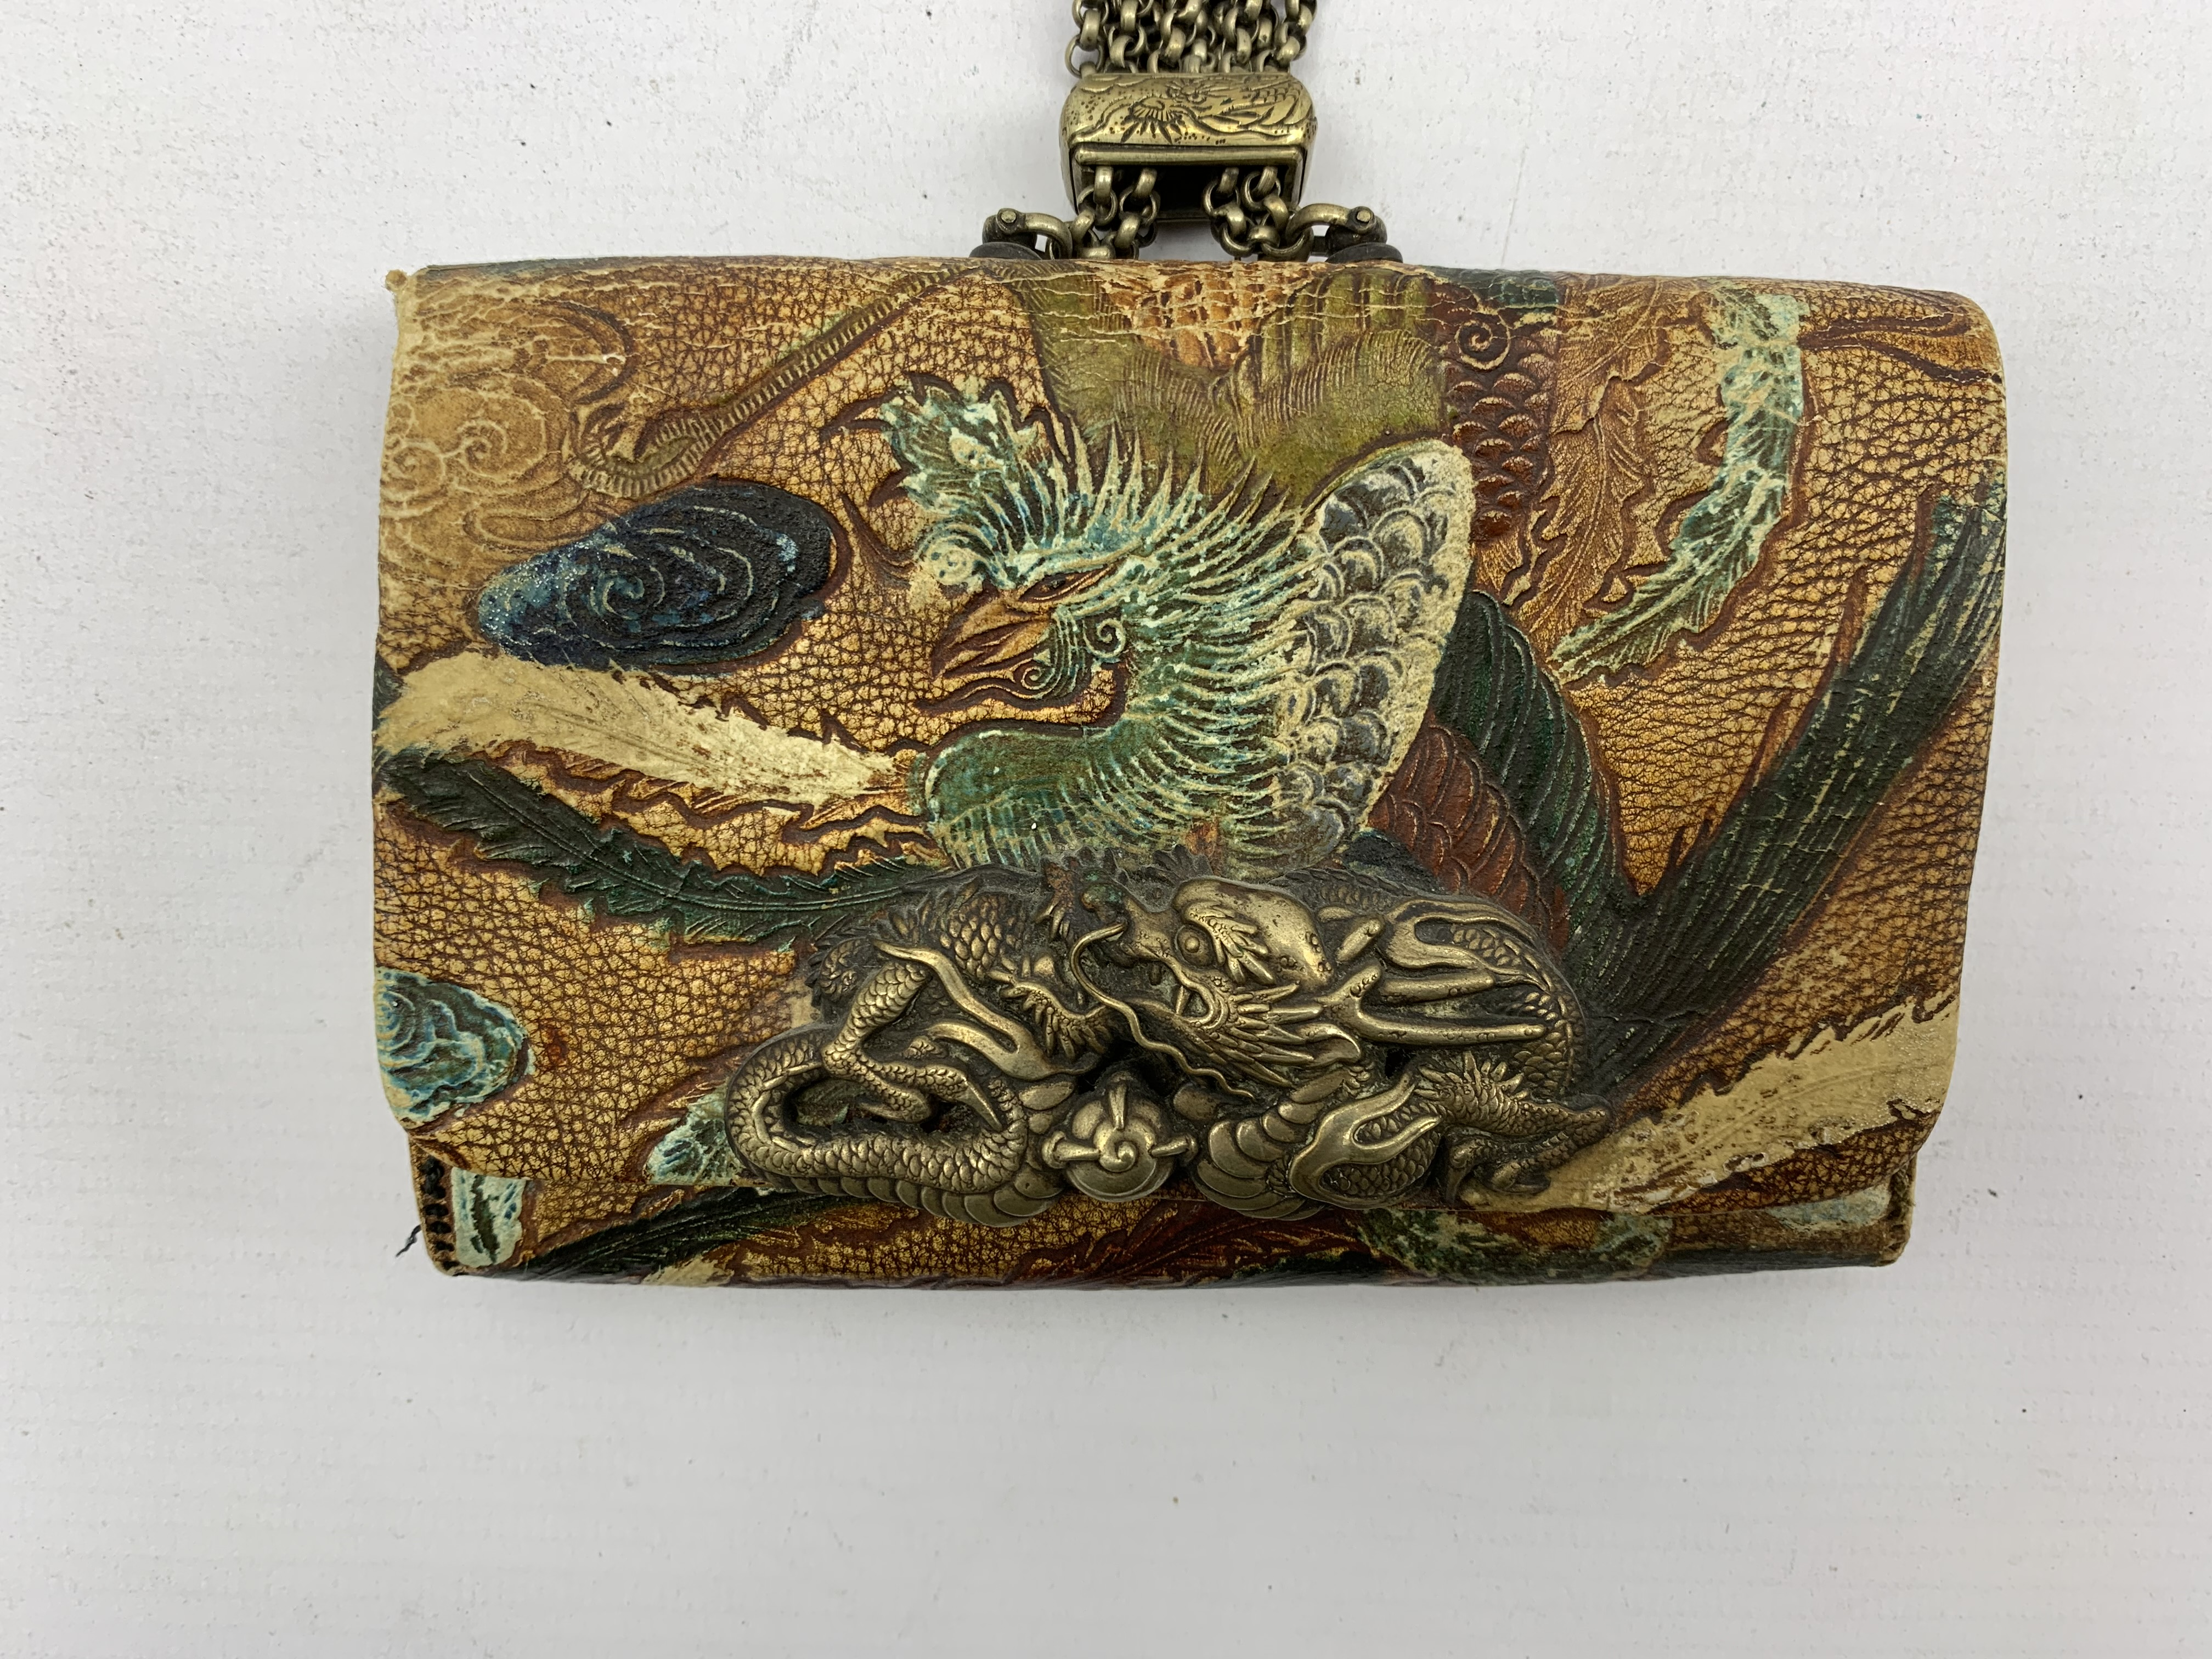 Japanese Meiji tooled leather tobacco pouch (tabako-ire) with metal mae-kanagu in the form of a Drag - Image 4 of 5